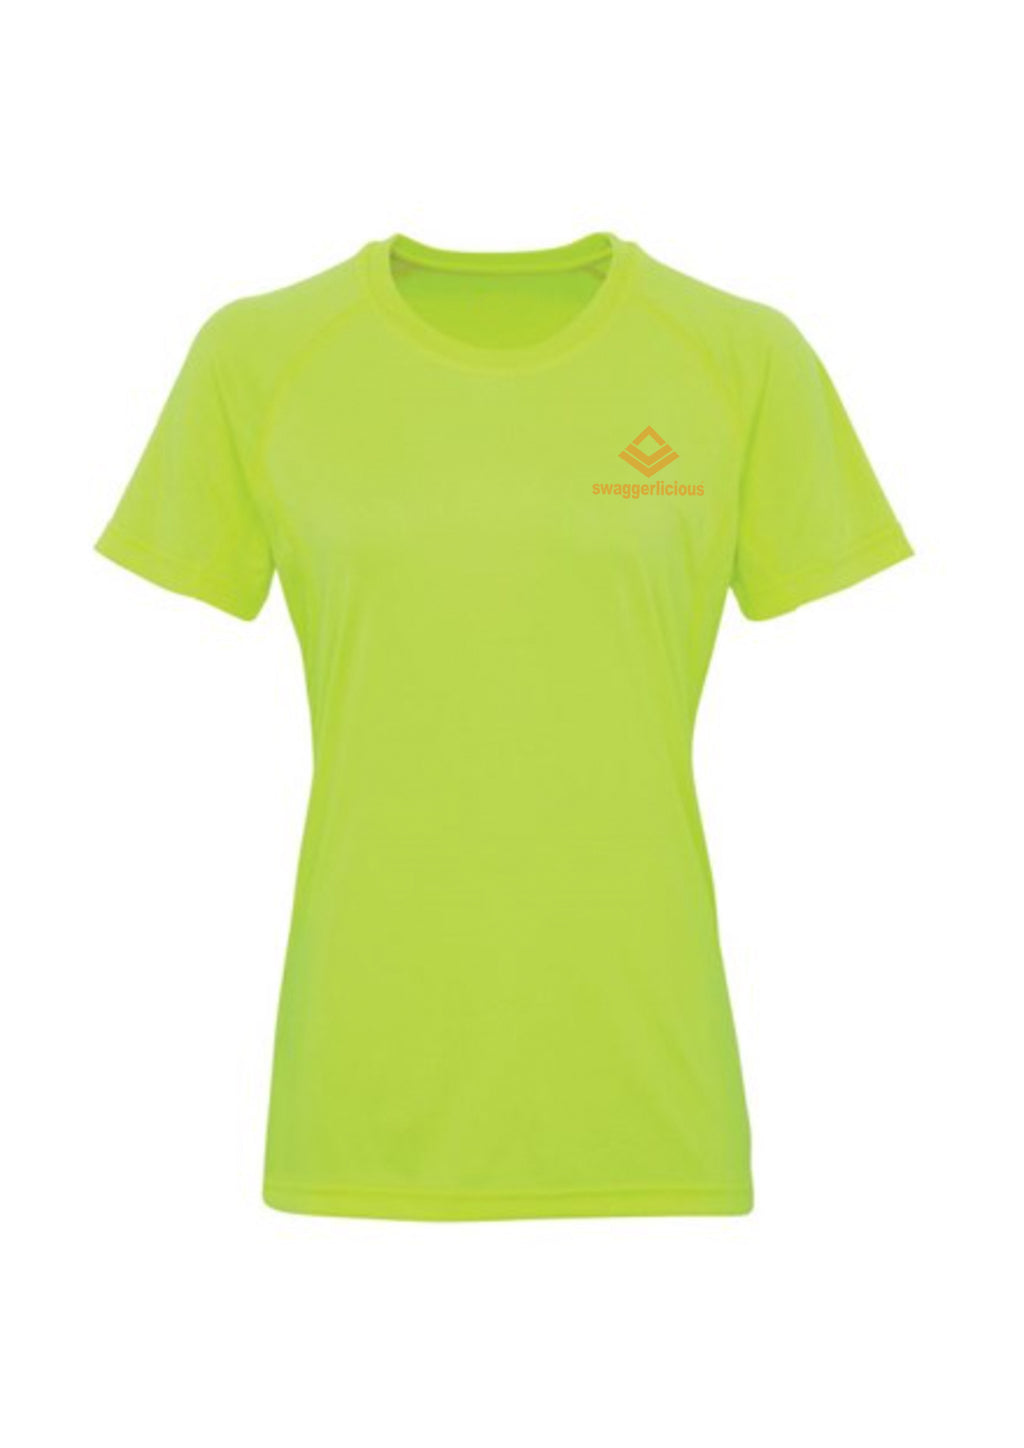 Swaggerlicious Lightning Green Active Sports Tee with Gold Logo